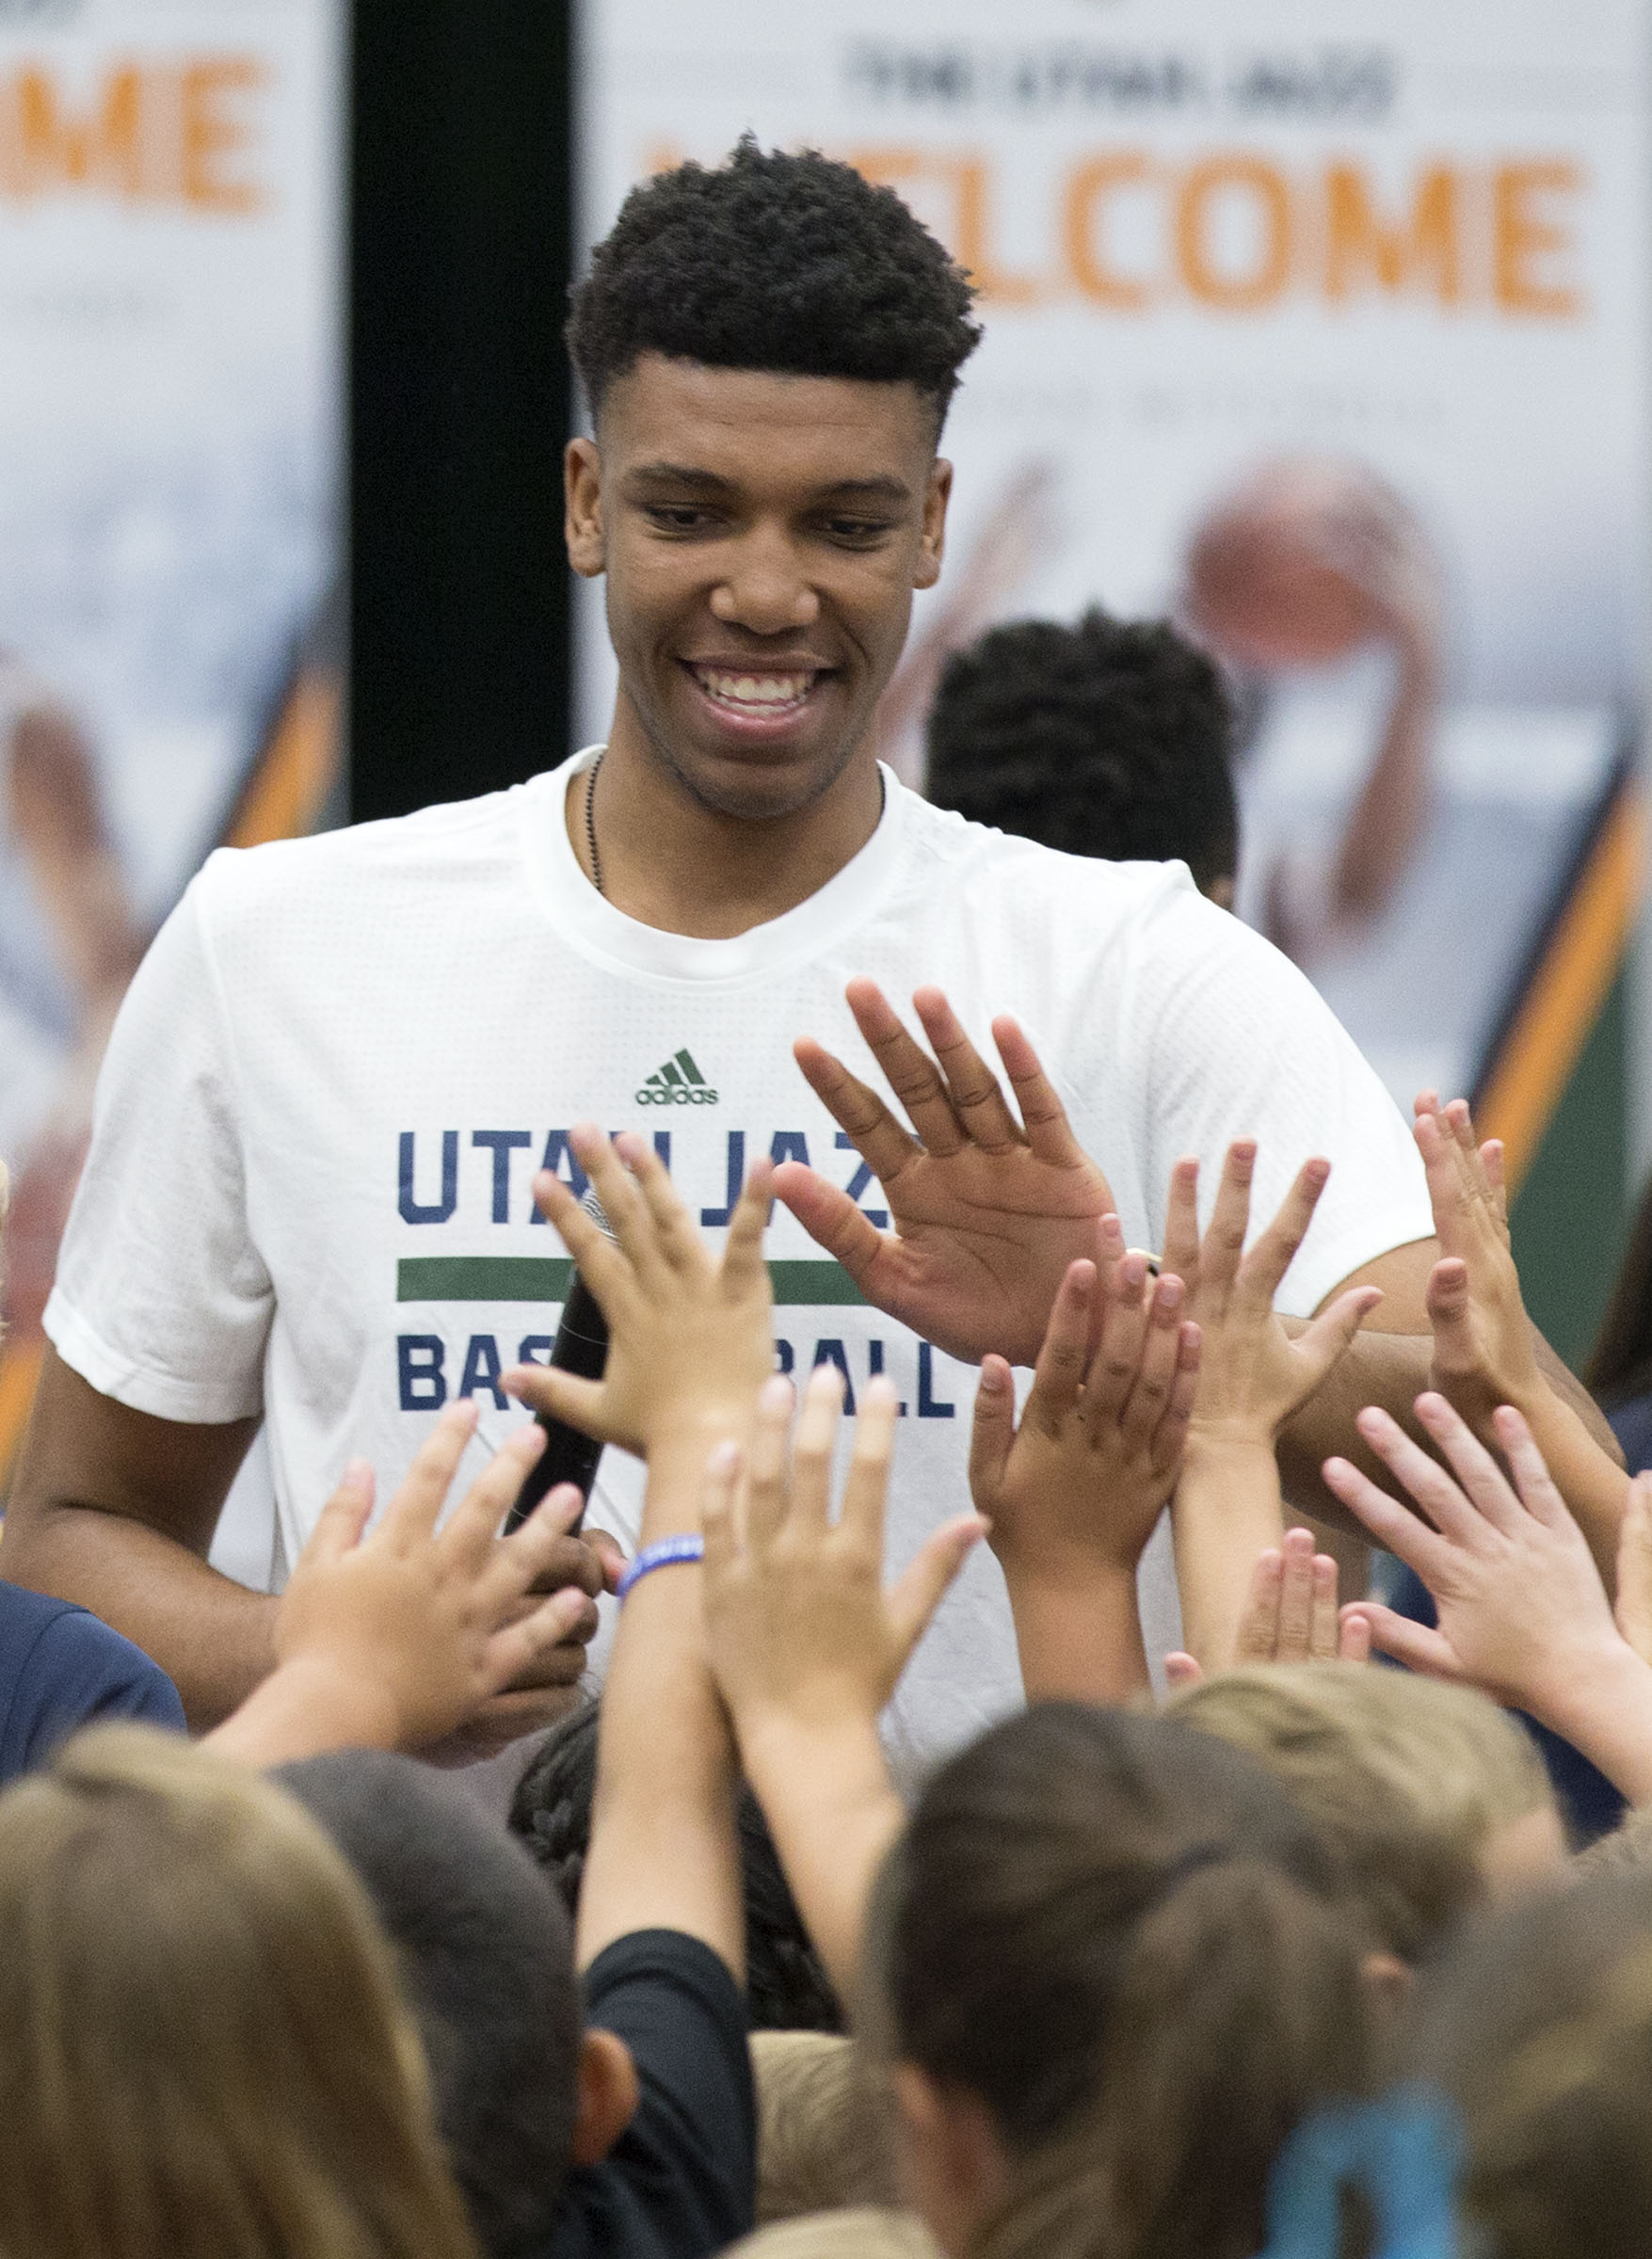 """Utah Jazz draft pick Tony Bradley is surrounded by students during a """"Welcome to Utah"""" assembly at South Jordan Elementary School on Thursday, June 29, 2017. Bradley joined fellow draft picks Nigel Williams-Goss and Donovan Mitchell at the assembly, where they read to more than 700 students, answered questions and stressed the importance of a good education."""